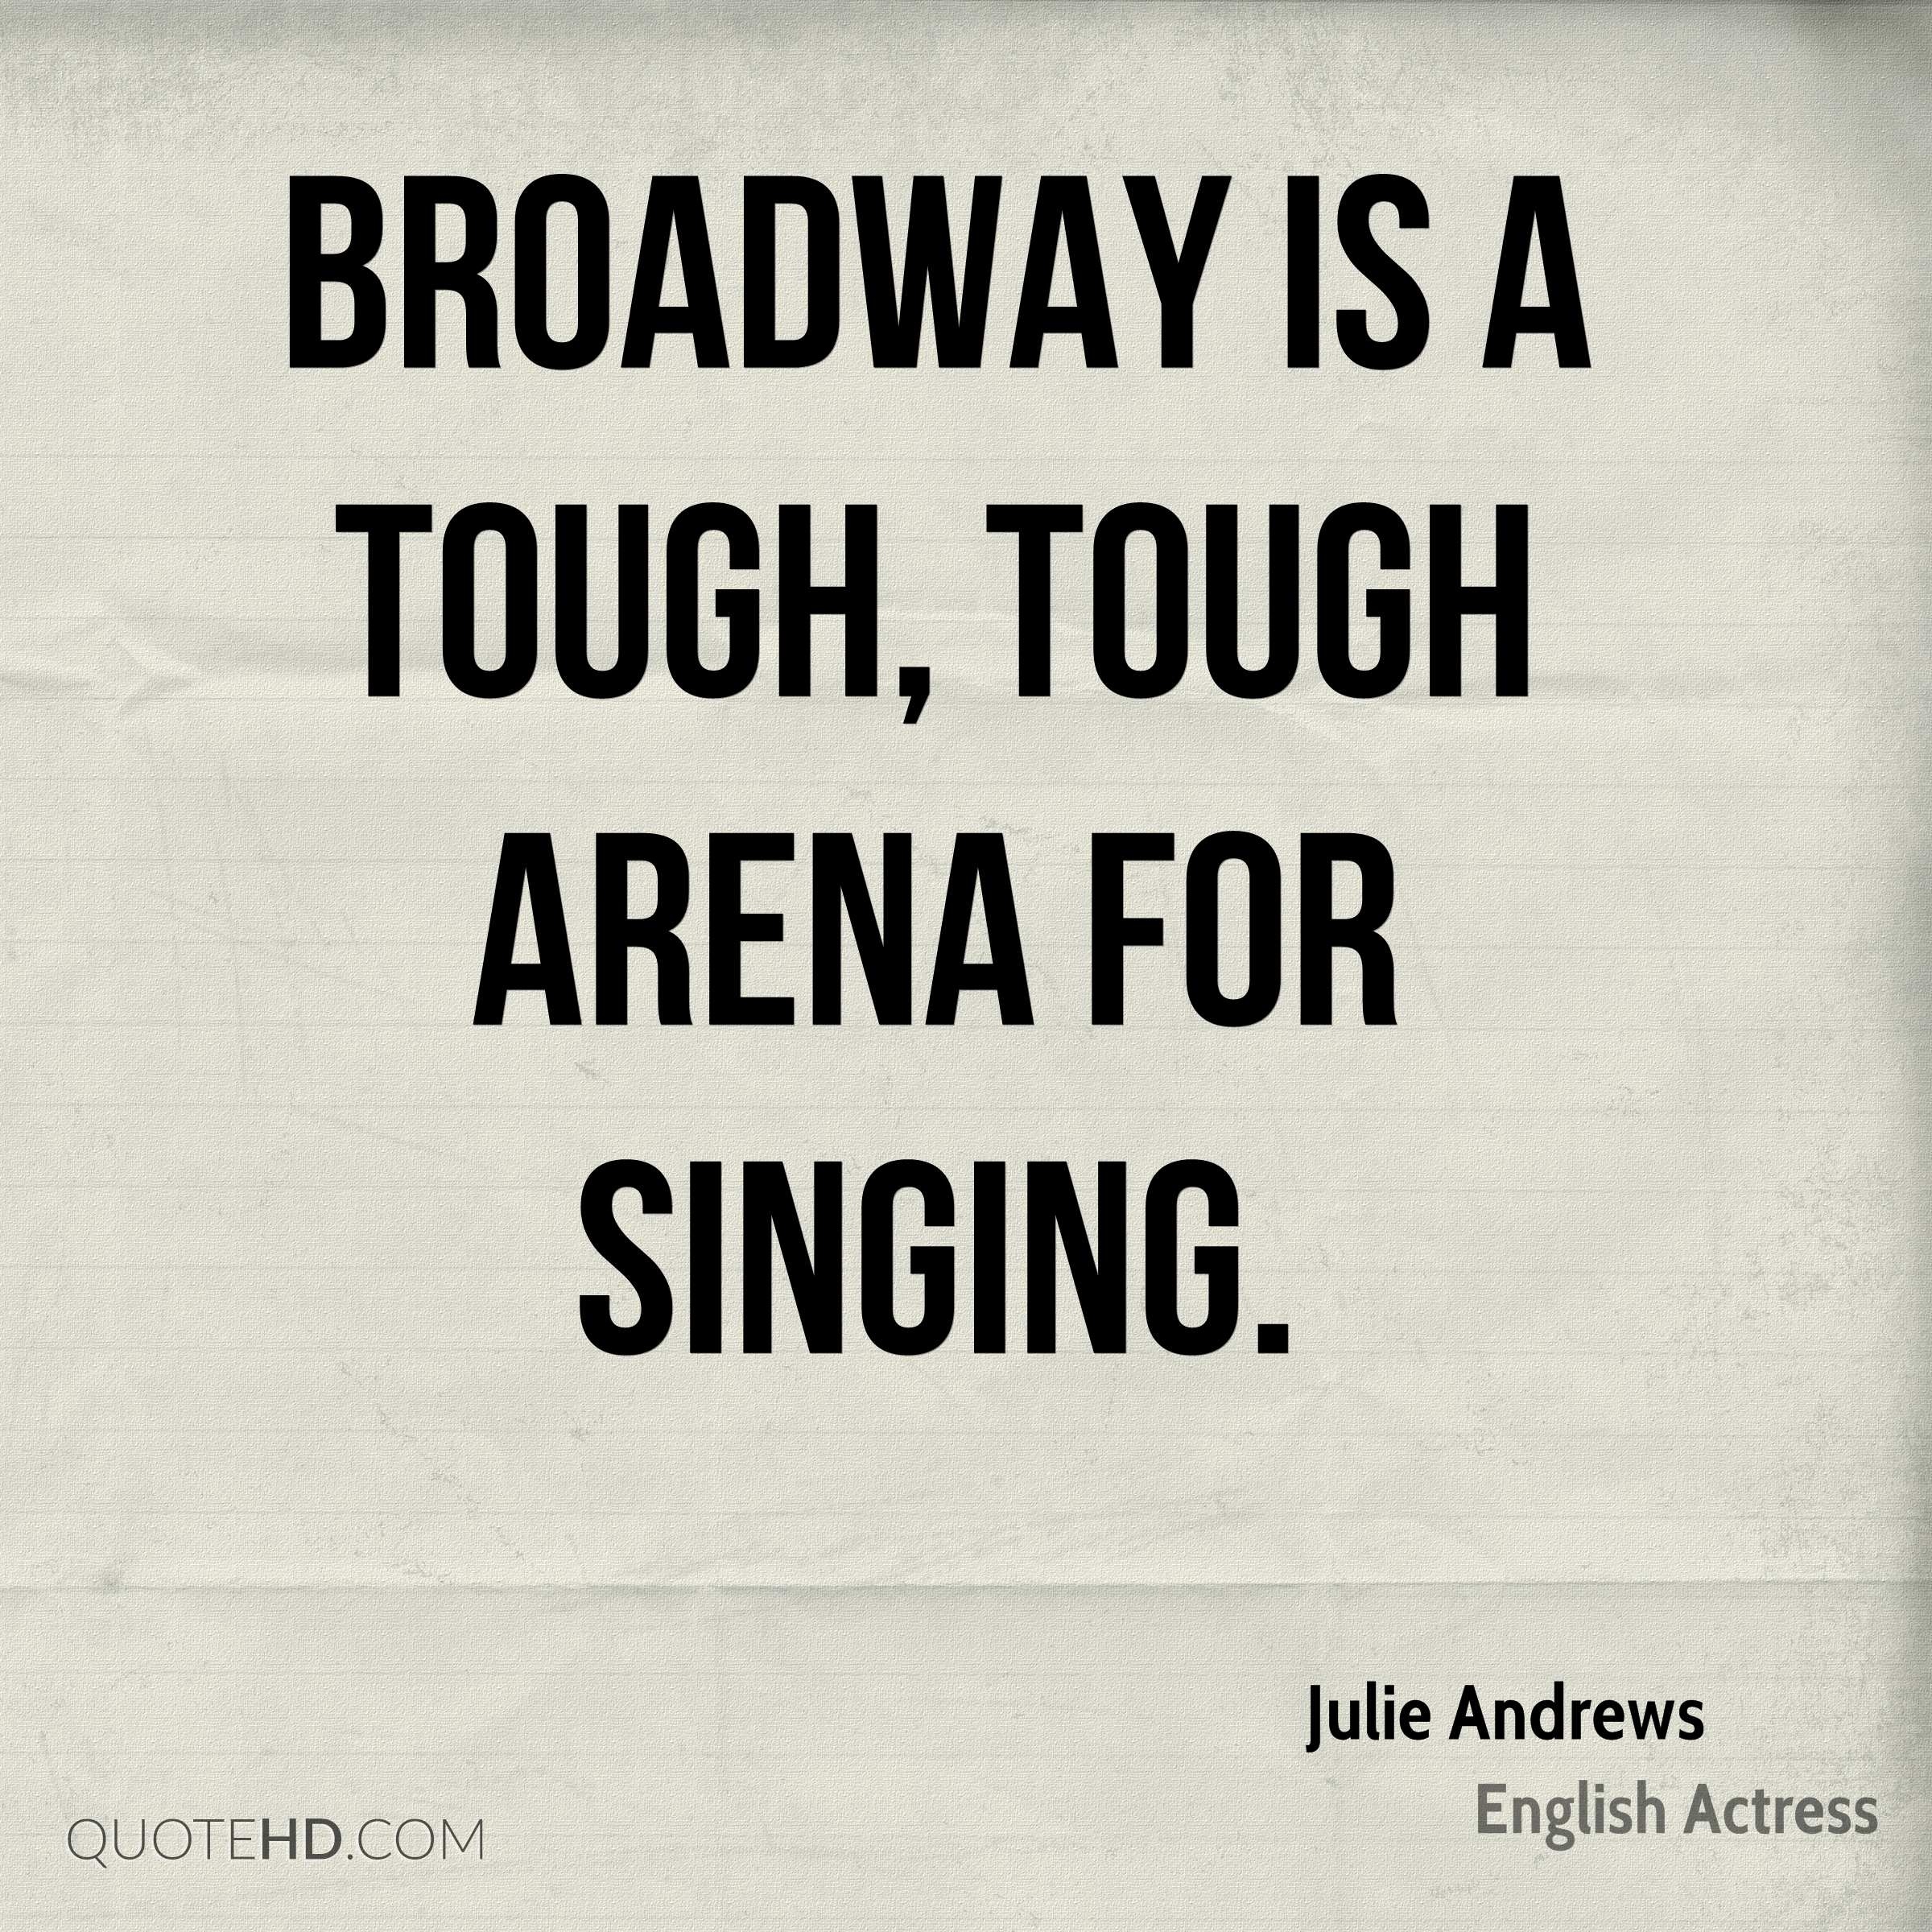 Broadway is a tough, tough arena for singing.